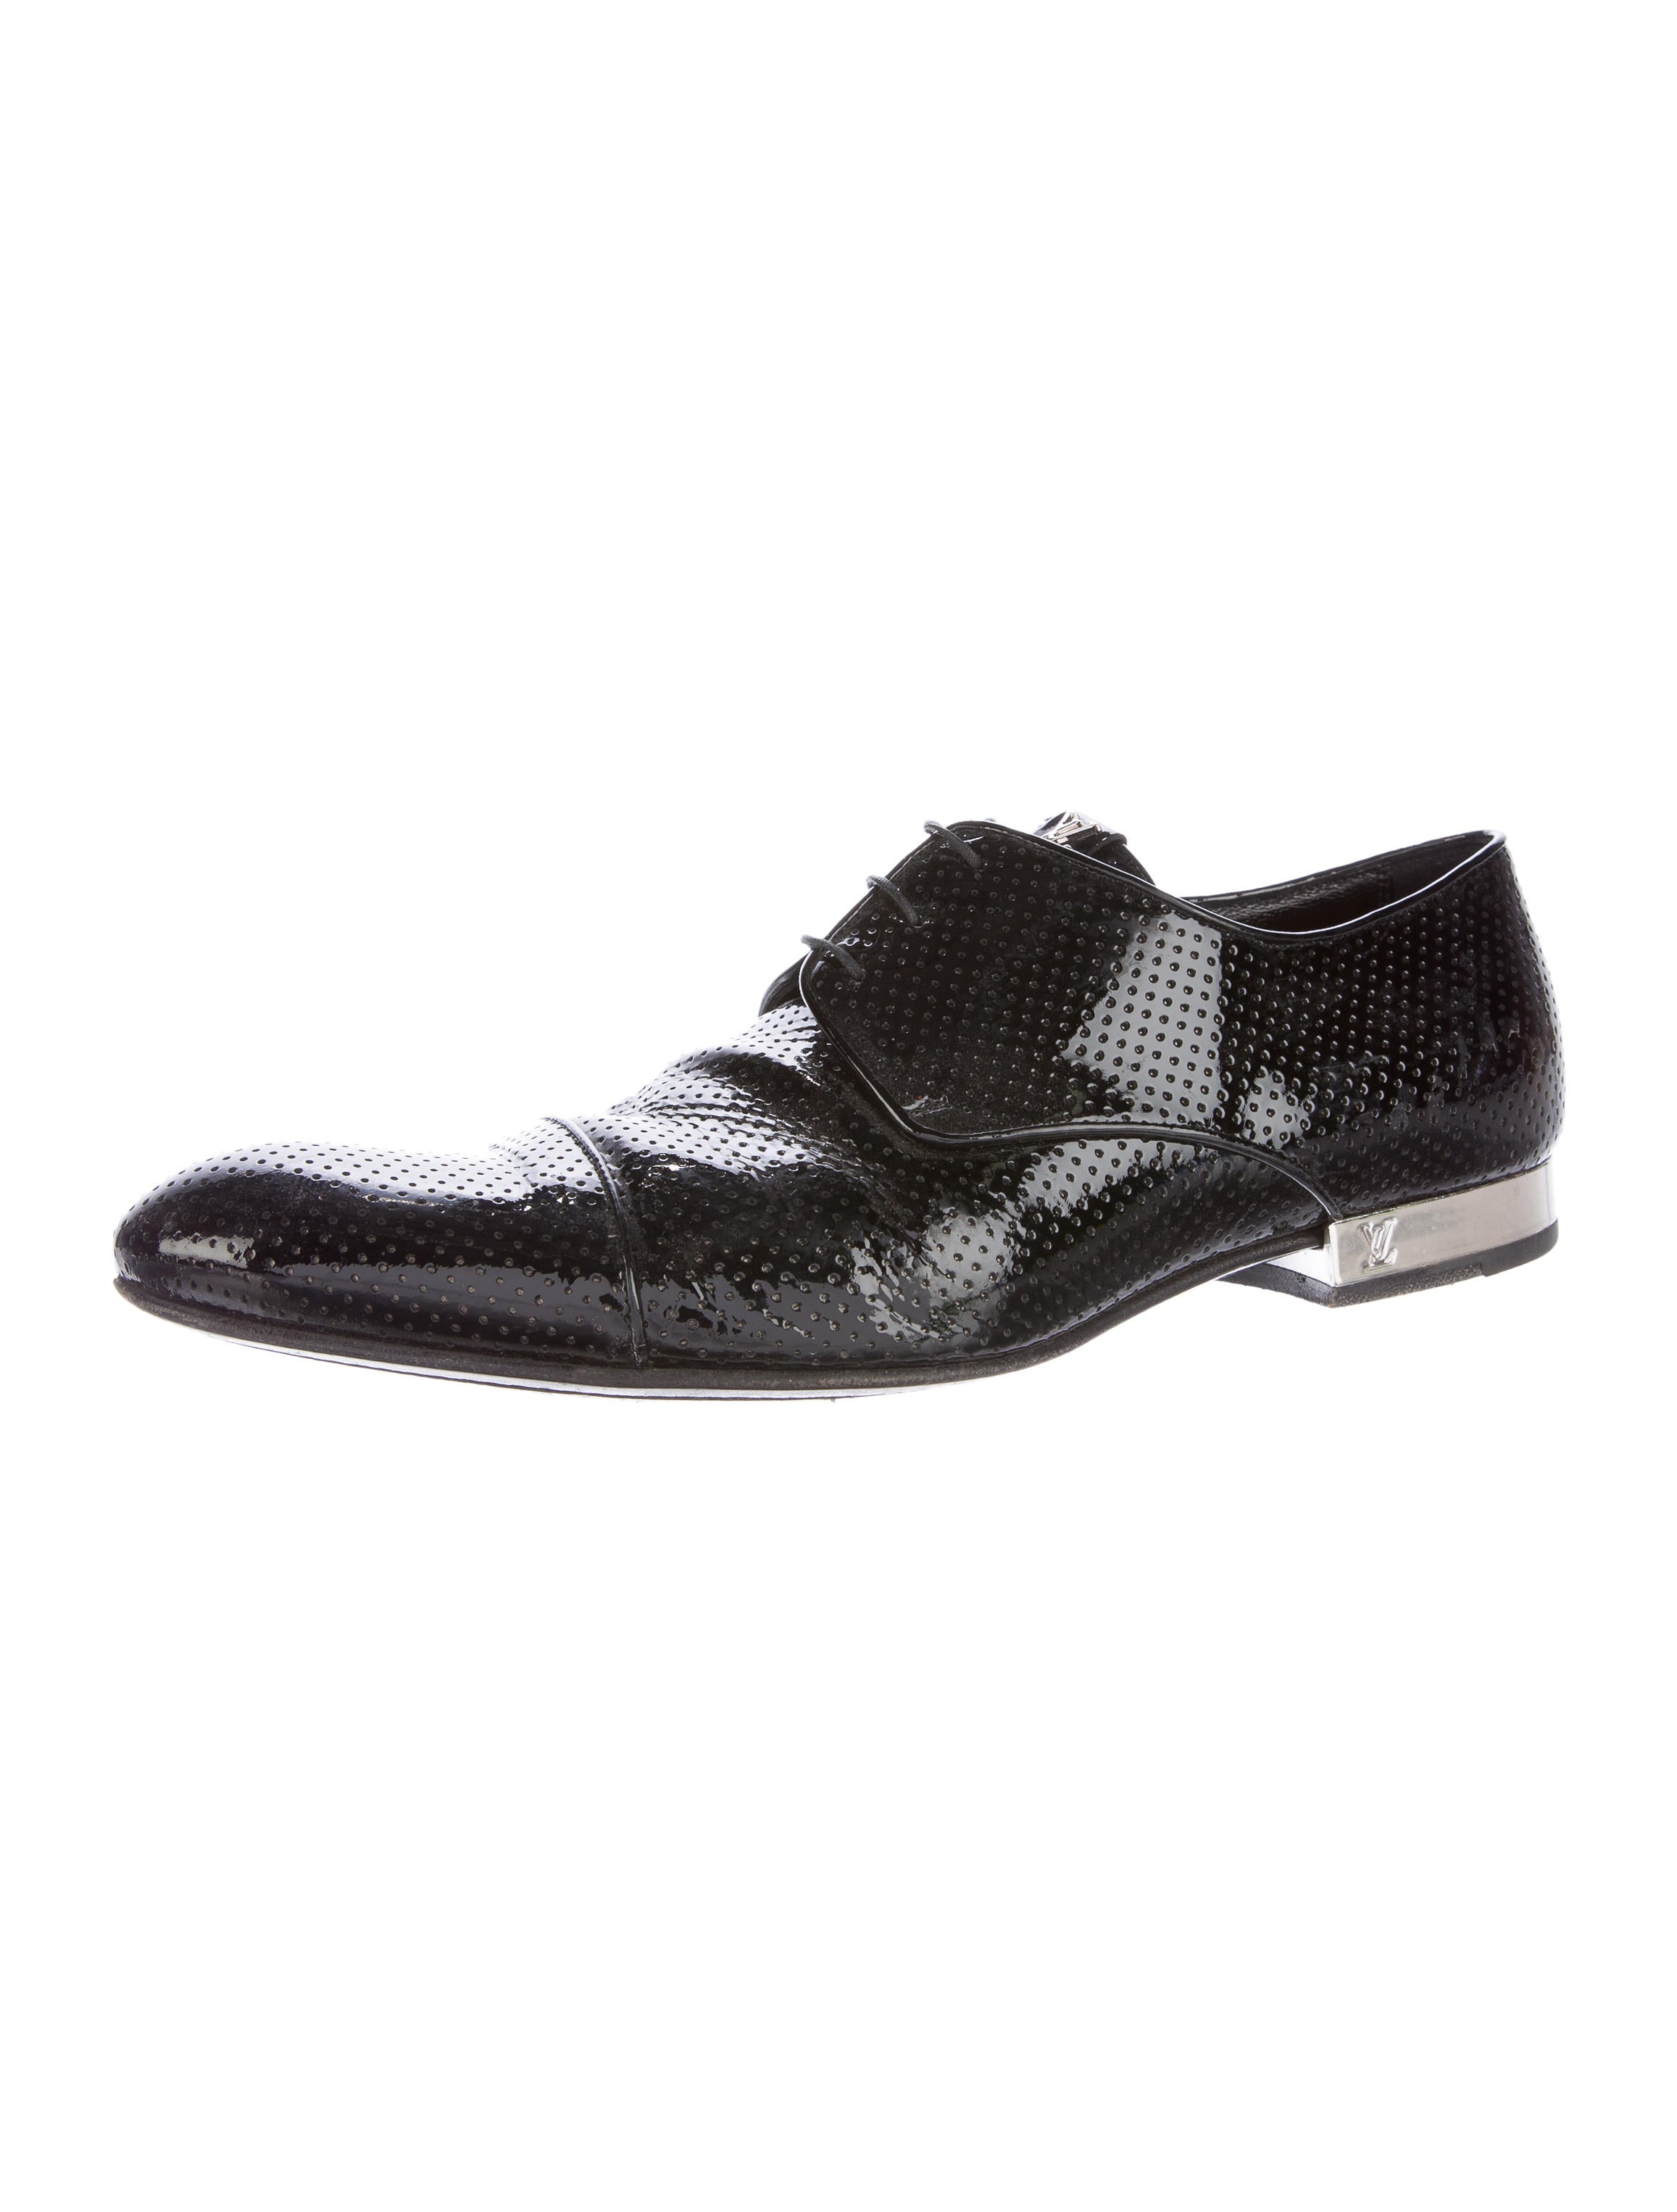 louis vuitton perforated patent leather derby shoes